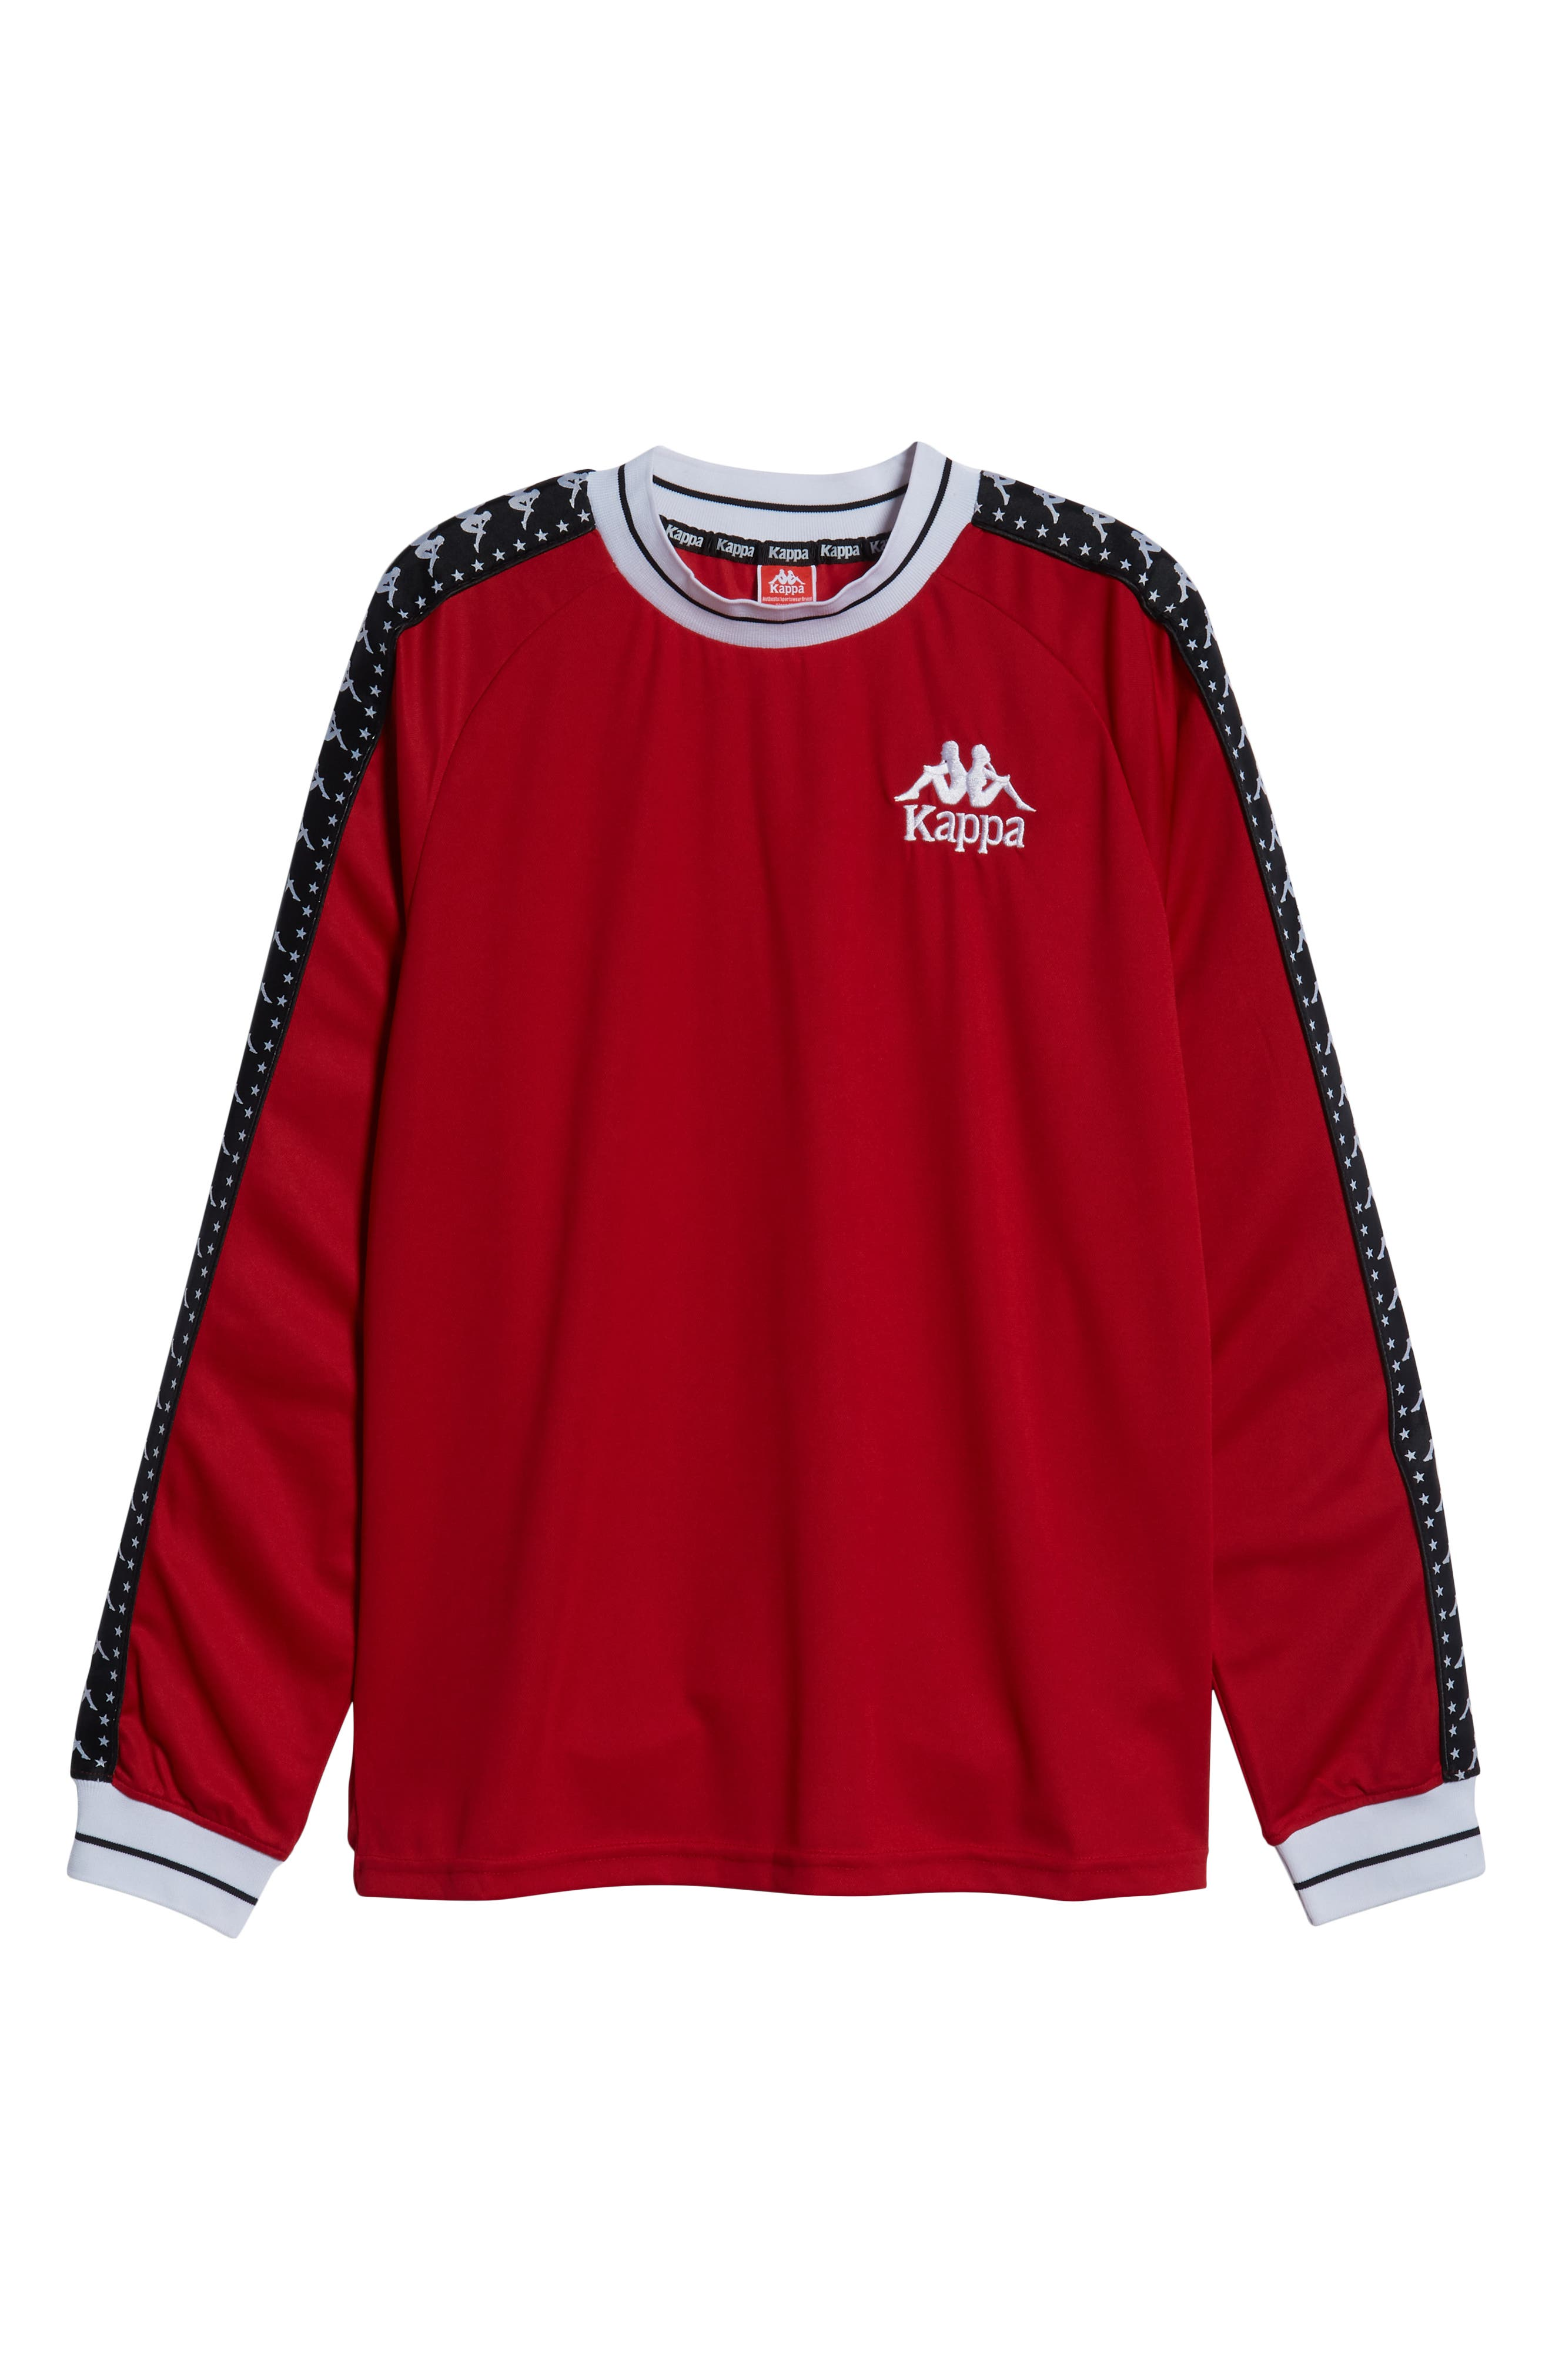 Authentic Aneat Logo Taped Long Sleeve T-Shirt,                             Alternate thumbnail 6, color,                             RED/ BLACK/ WHITE